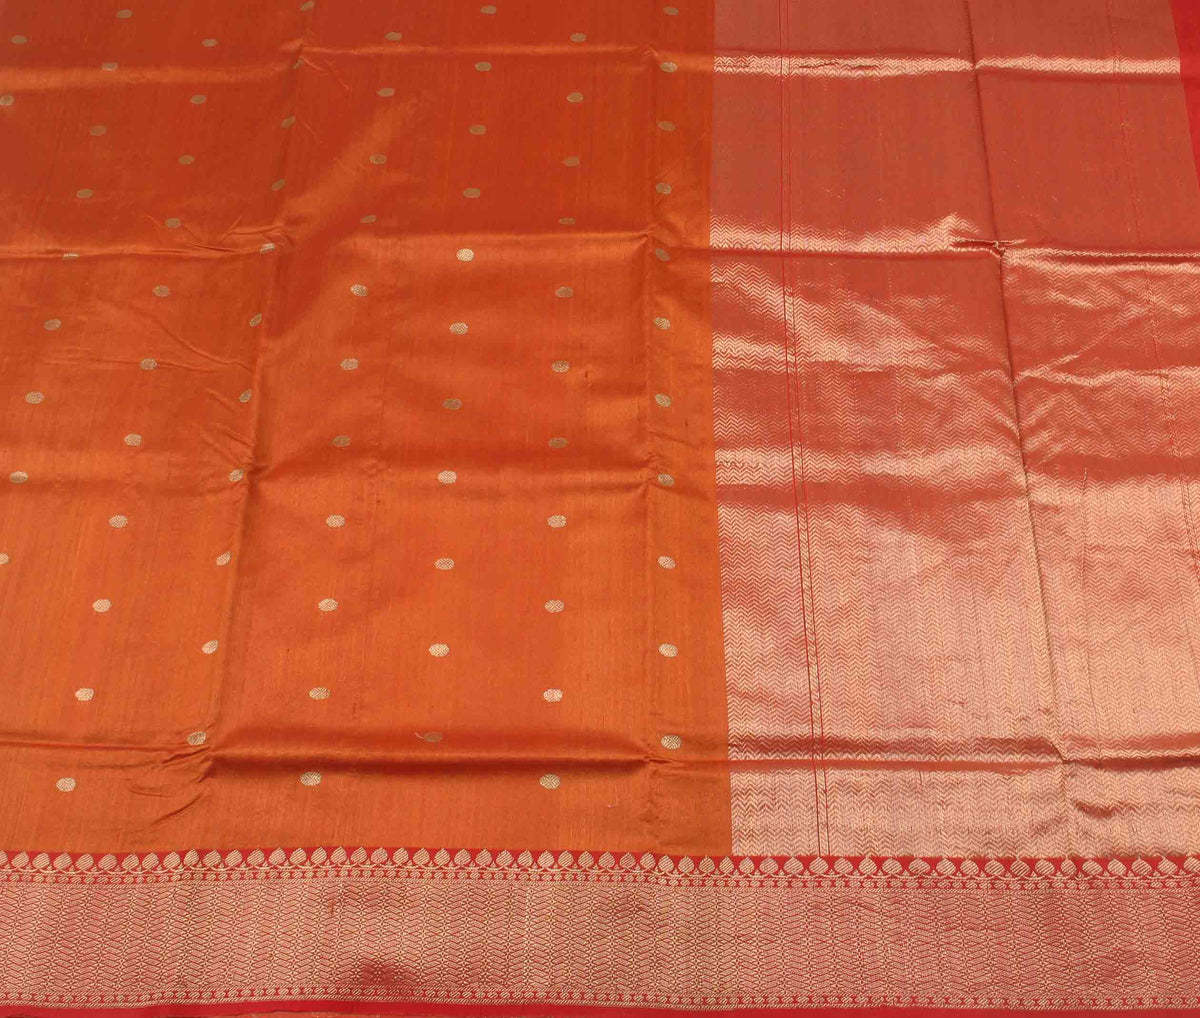 Orange Tussar Silk Handwoven Banarasi saree with polka dot motifs (2) flat